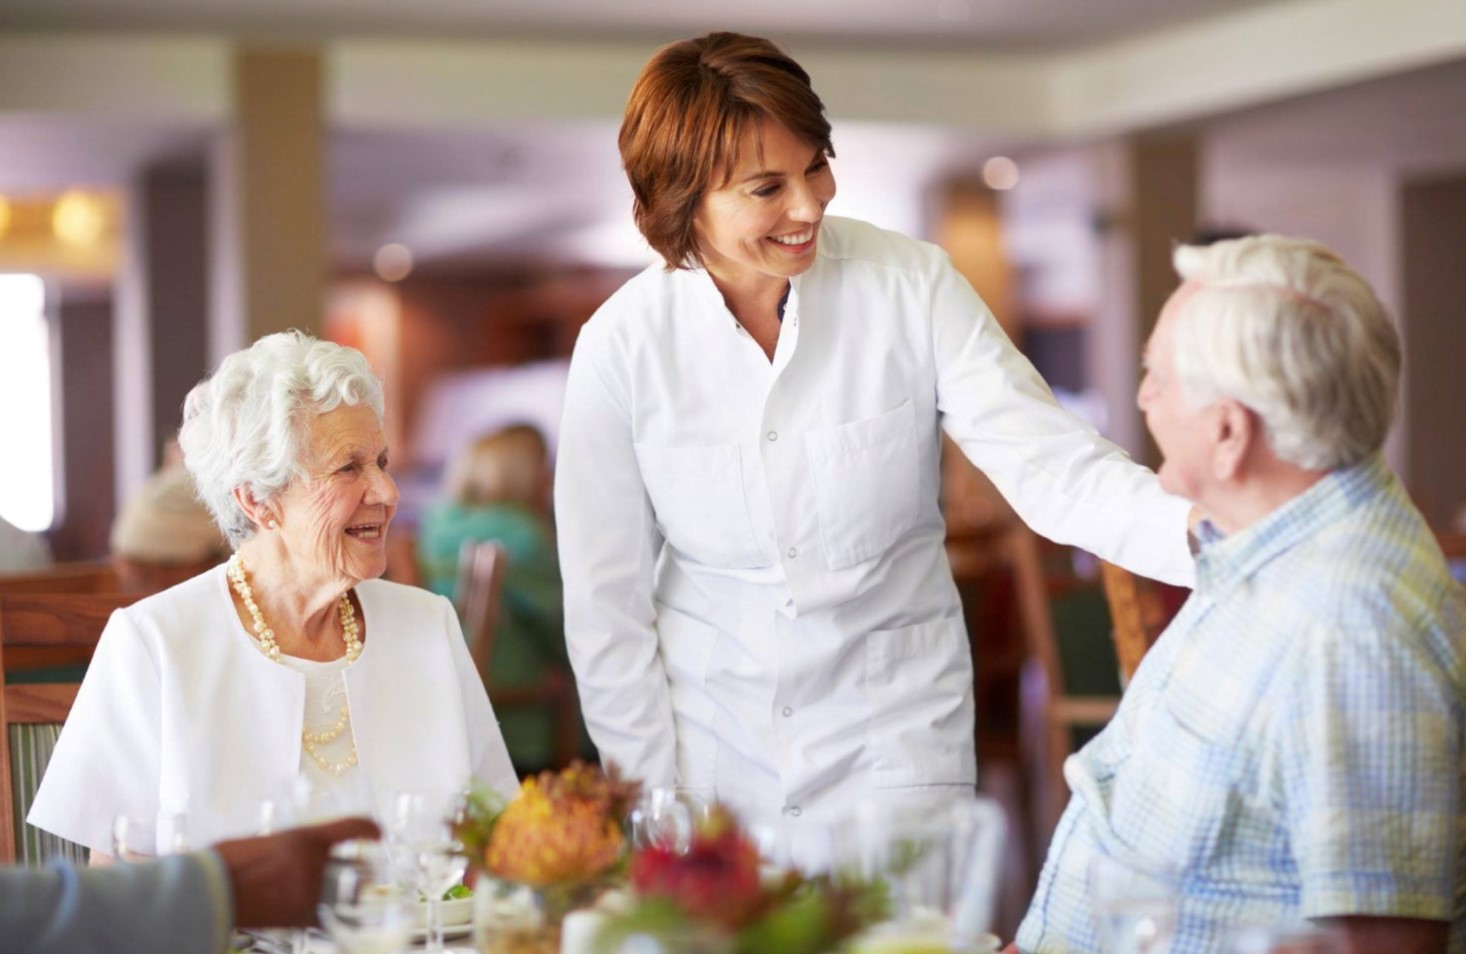 MONTCO Careers – Five Star Senior Living